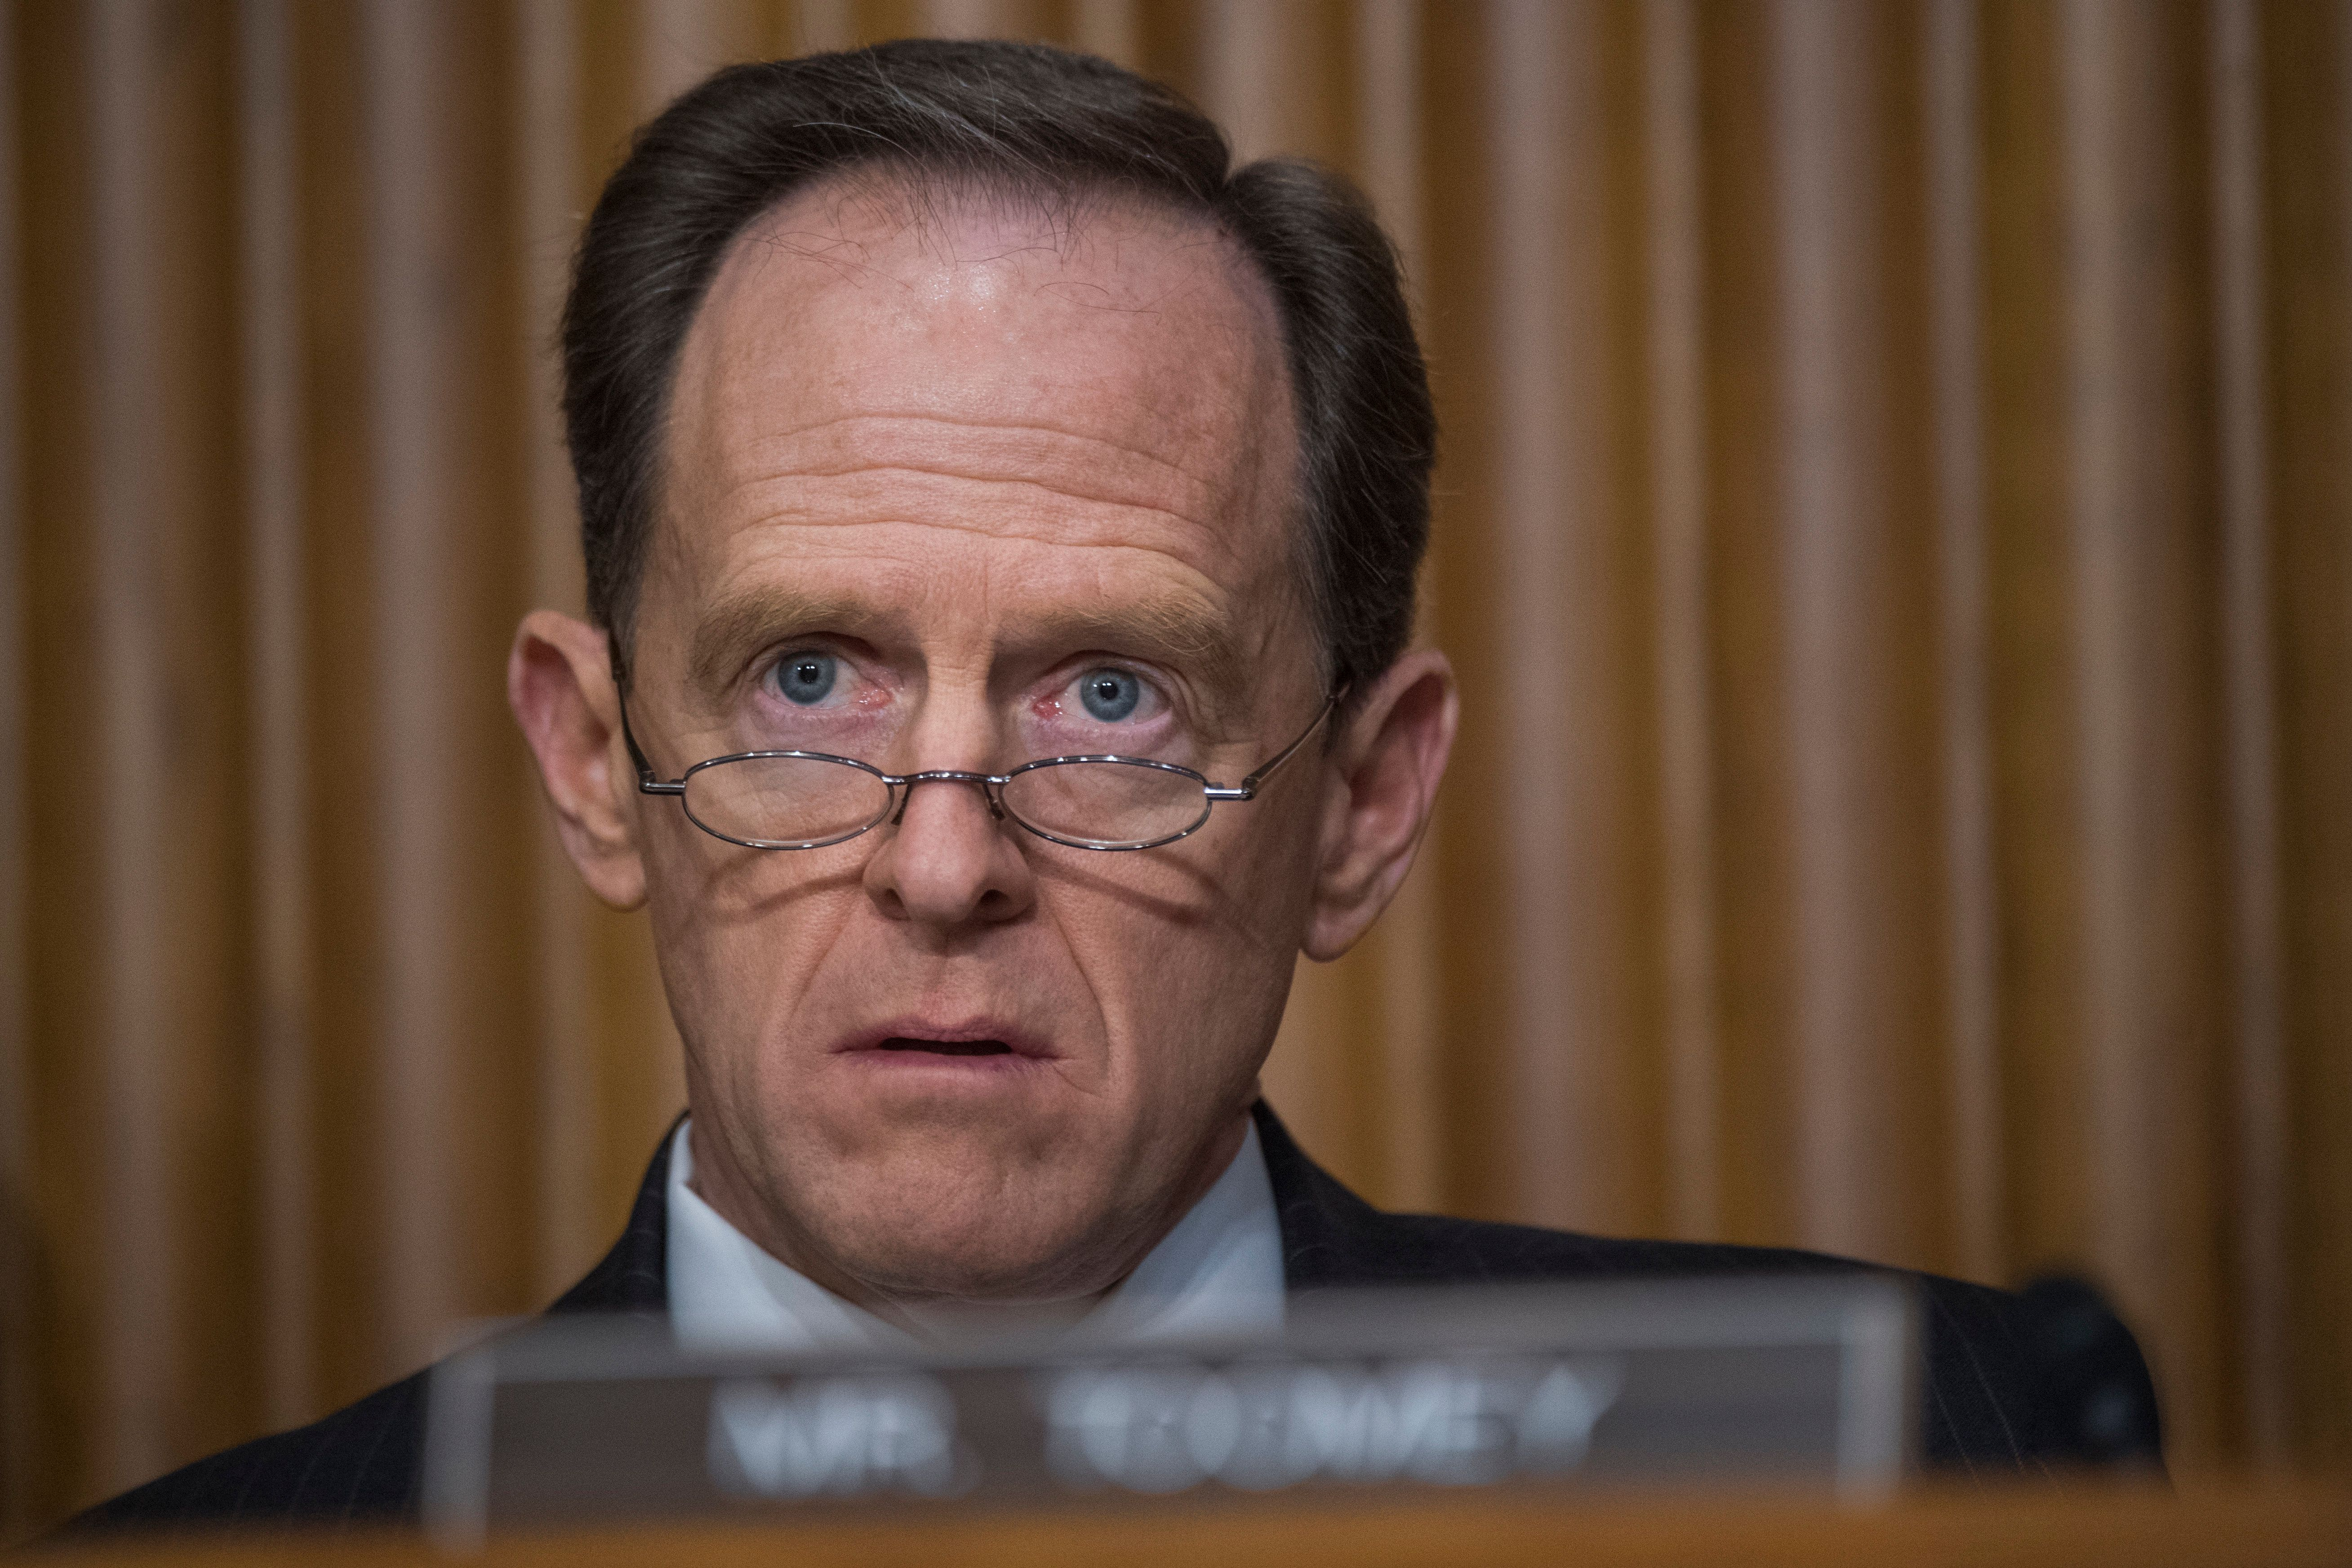 UNITED STATES - JANUARY 19: Sen. Pat Toomey, R-Pa., attends the Senate Finance Committee confirmation hearing for Steven Mnuchin, President-elect Trump's nominee for Treasury secretary, in Dirksen Building, January 19, 2017. (Photo By Tom Williams/CQ Roll Call)